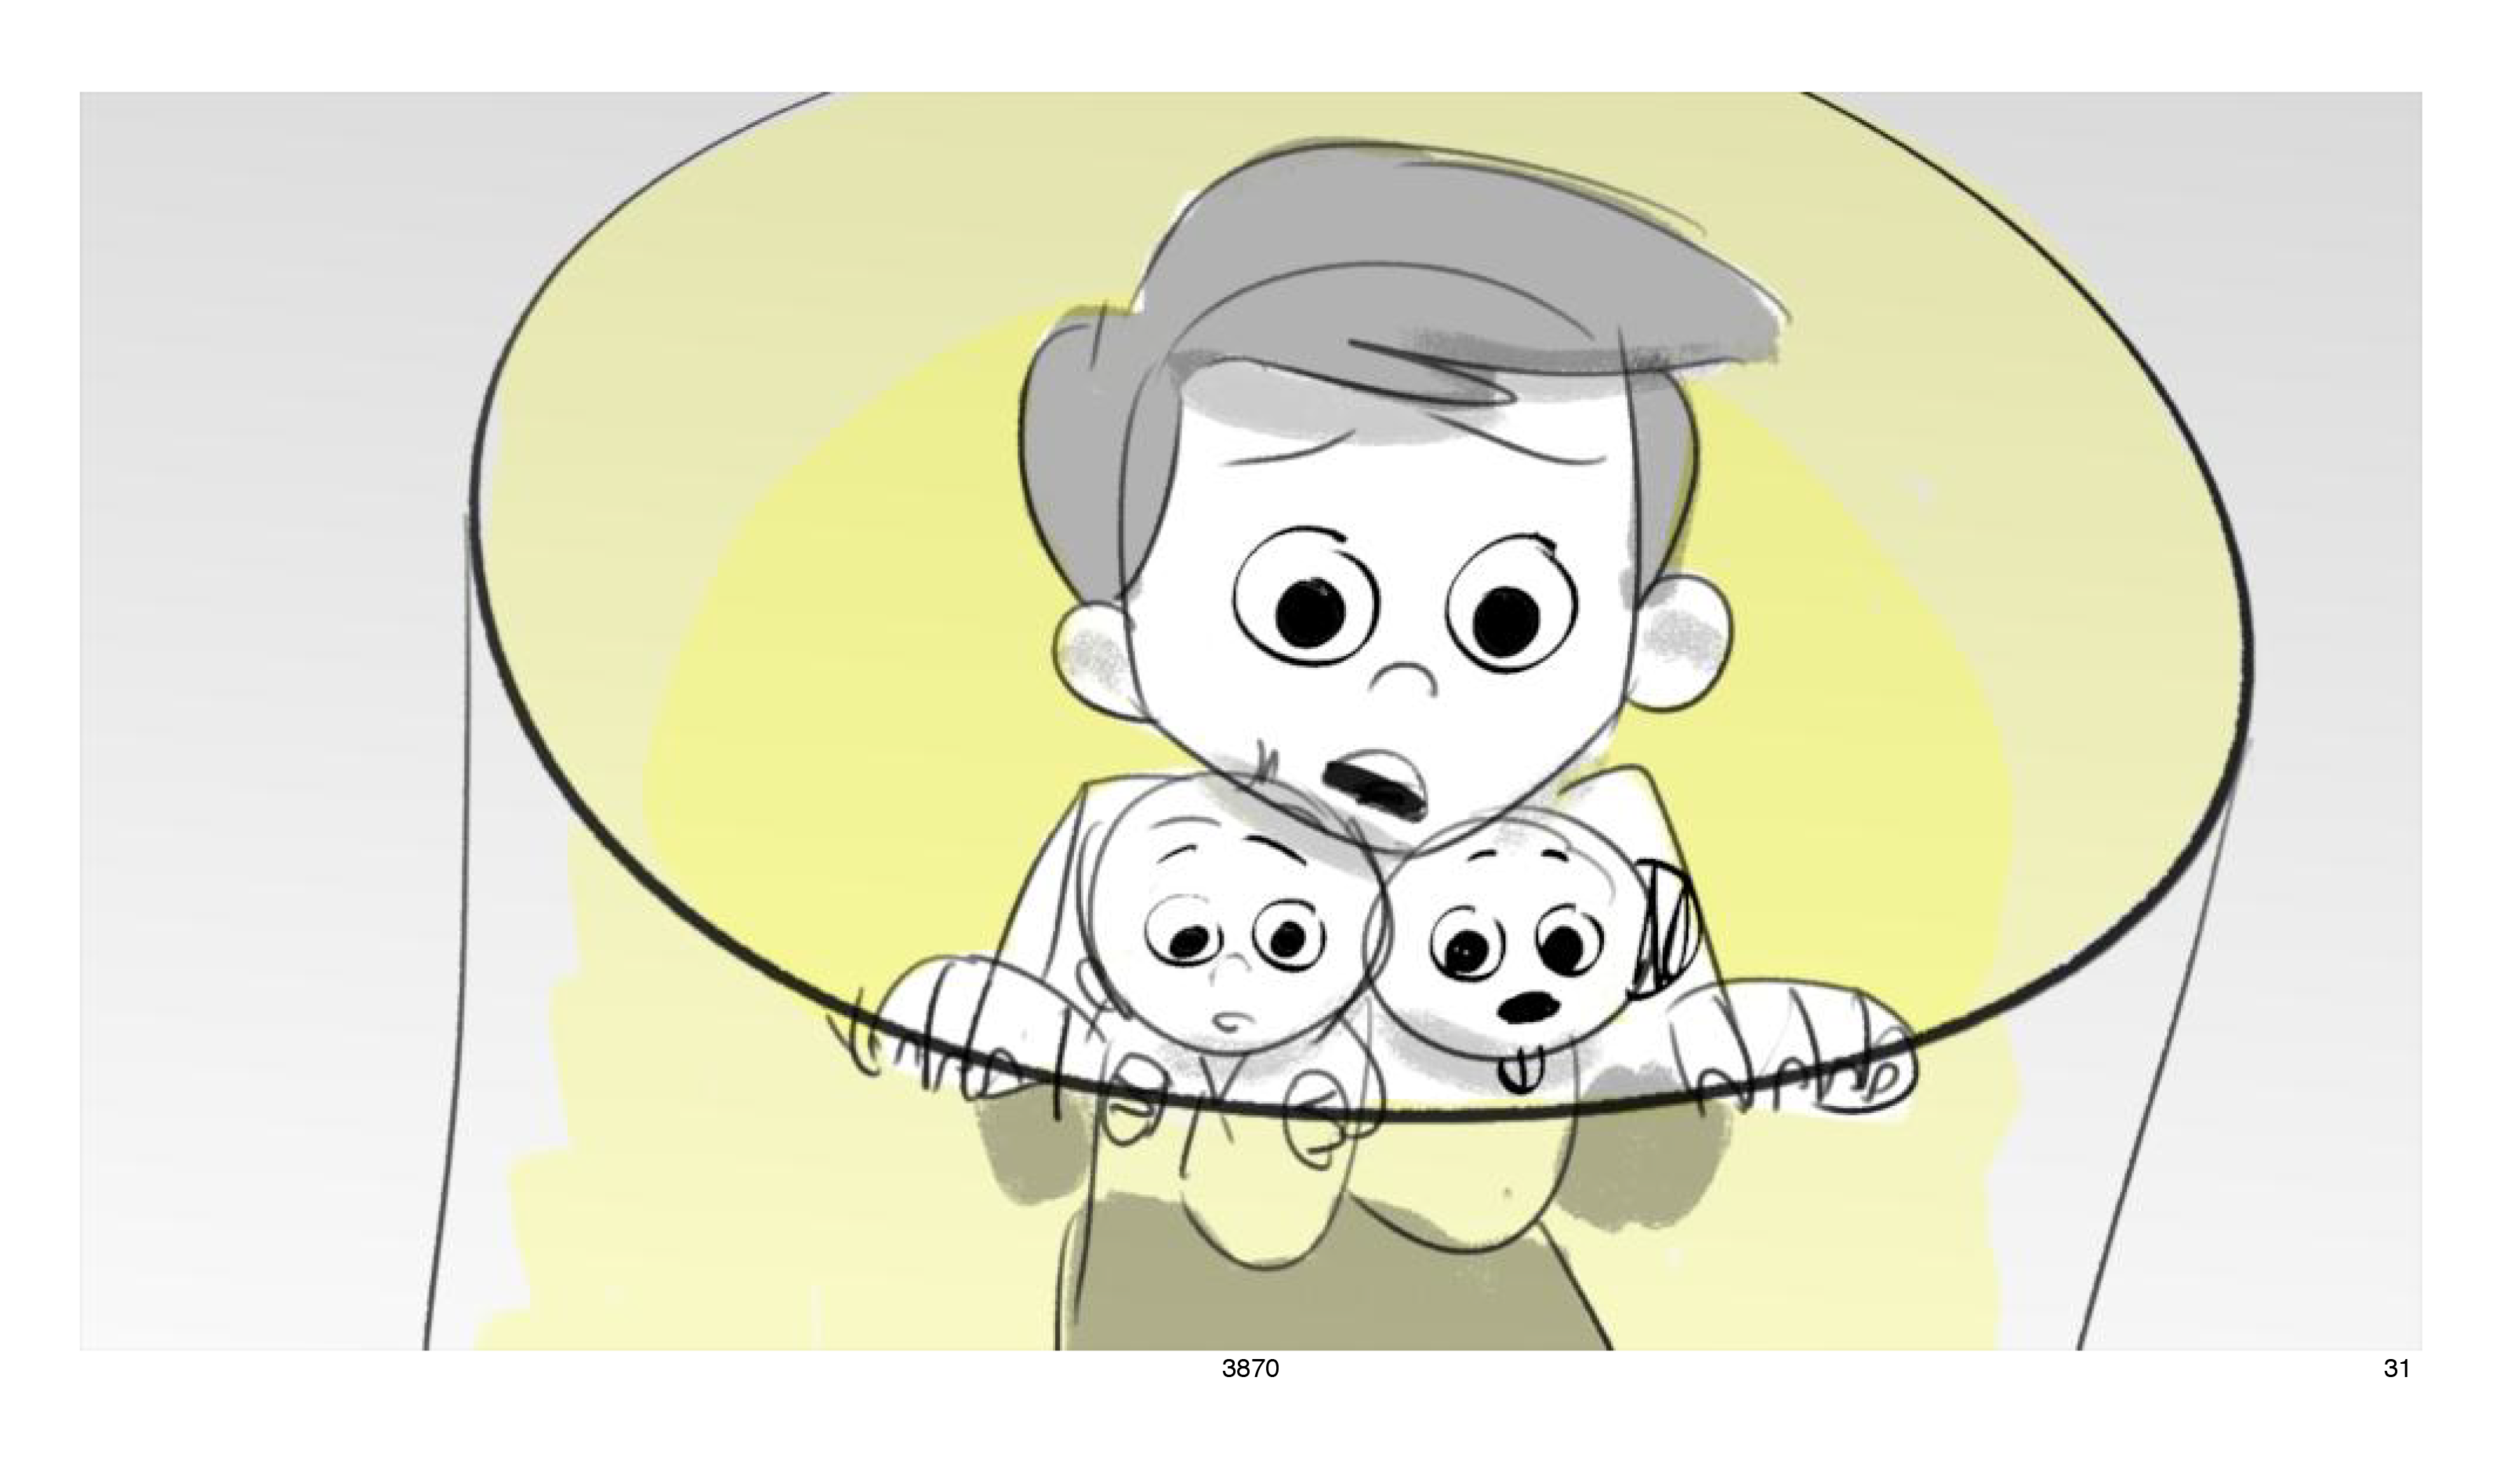 BossBaby_031.png